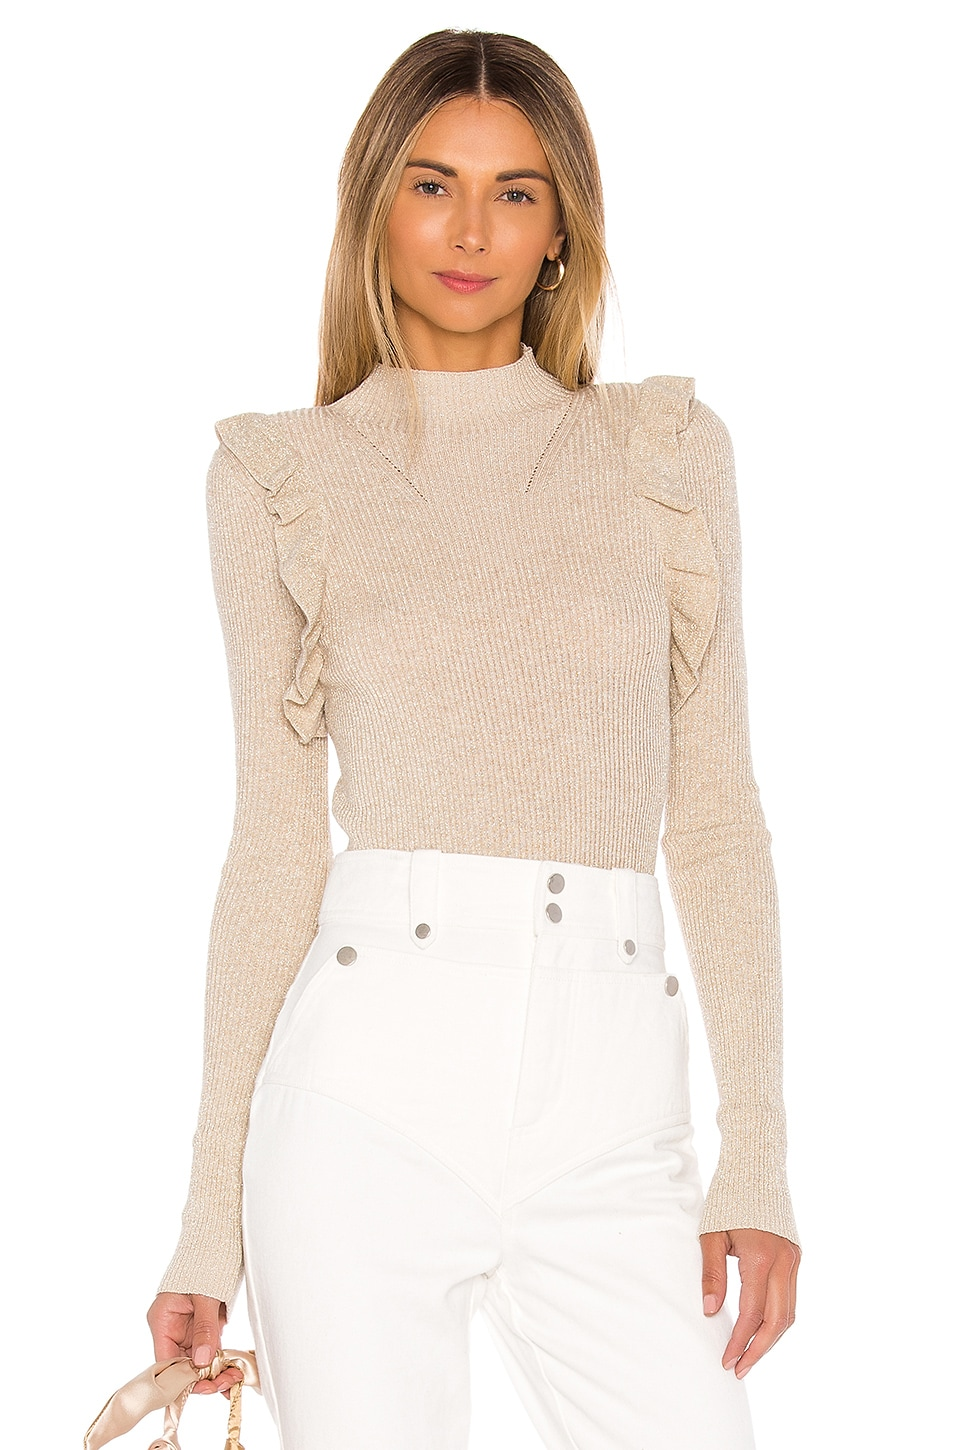 MAJORELLE Annie Sweater in Ivory